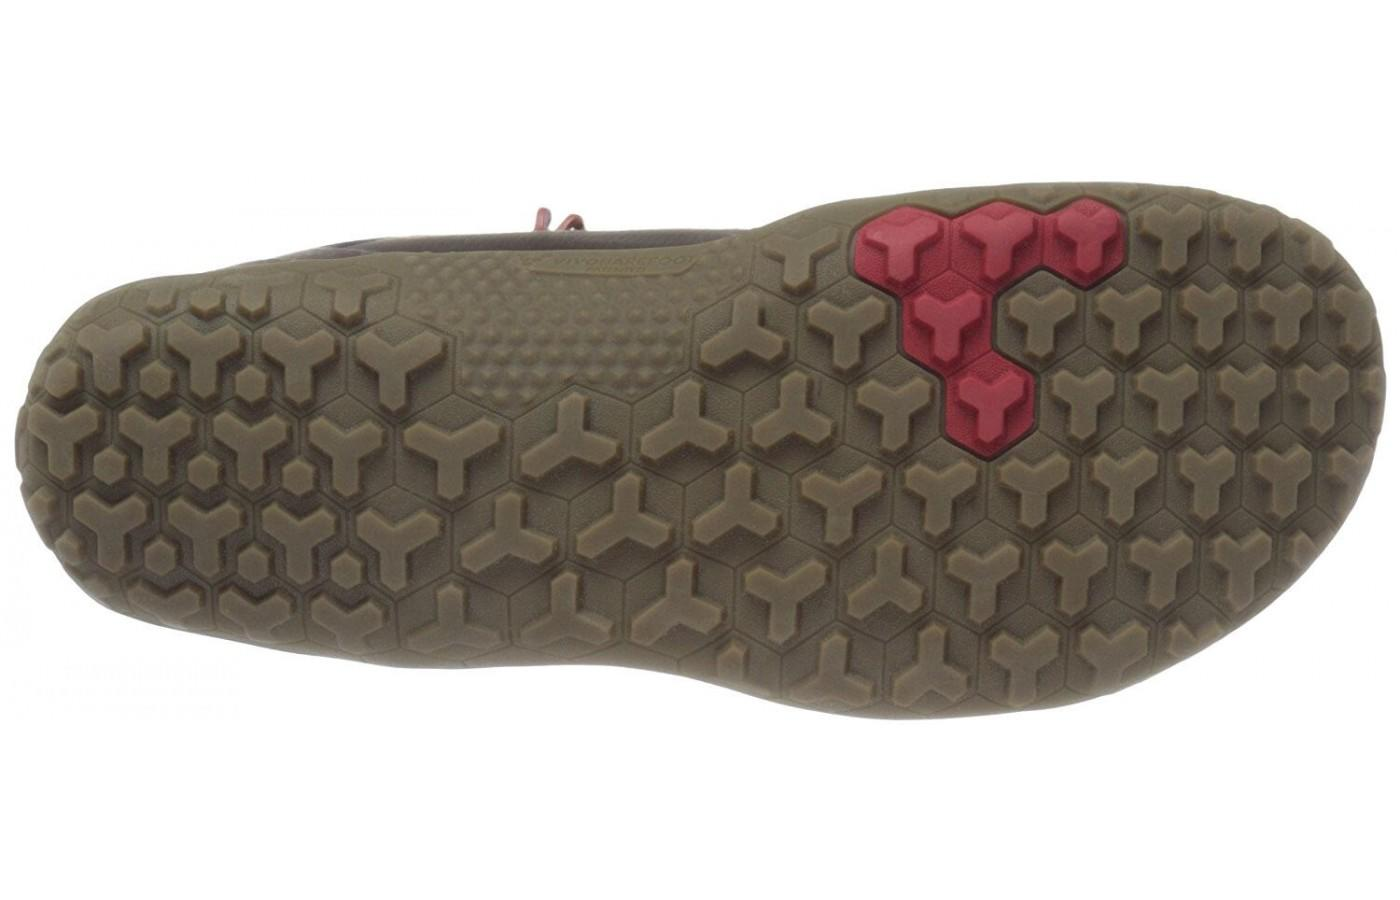 Lugged underfoot for superior traction on tough terrain.